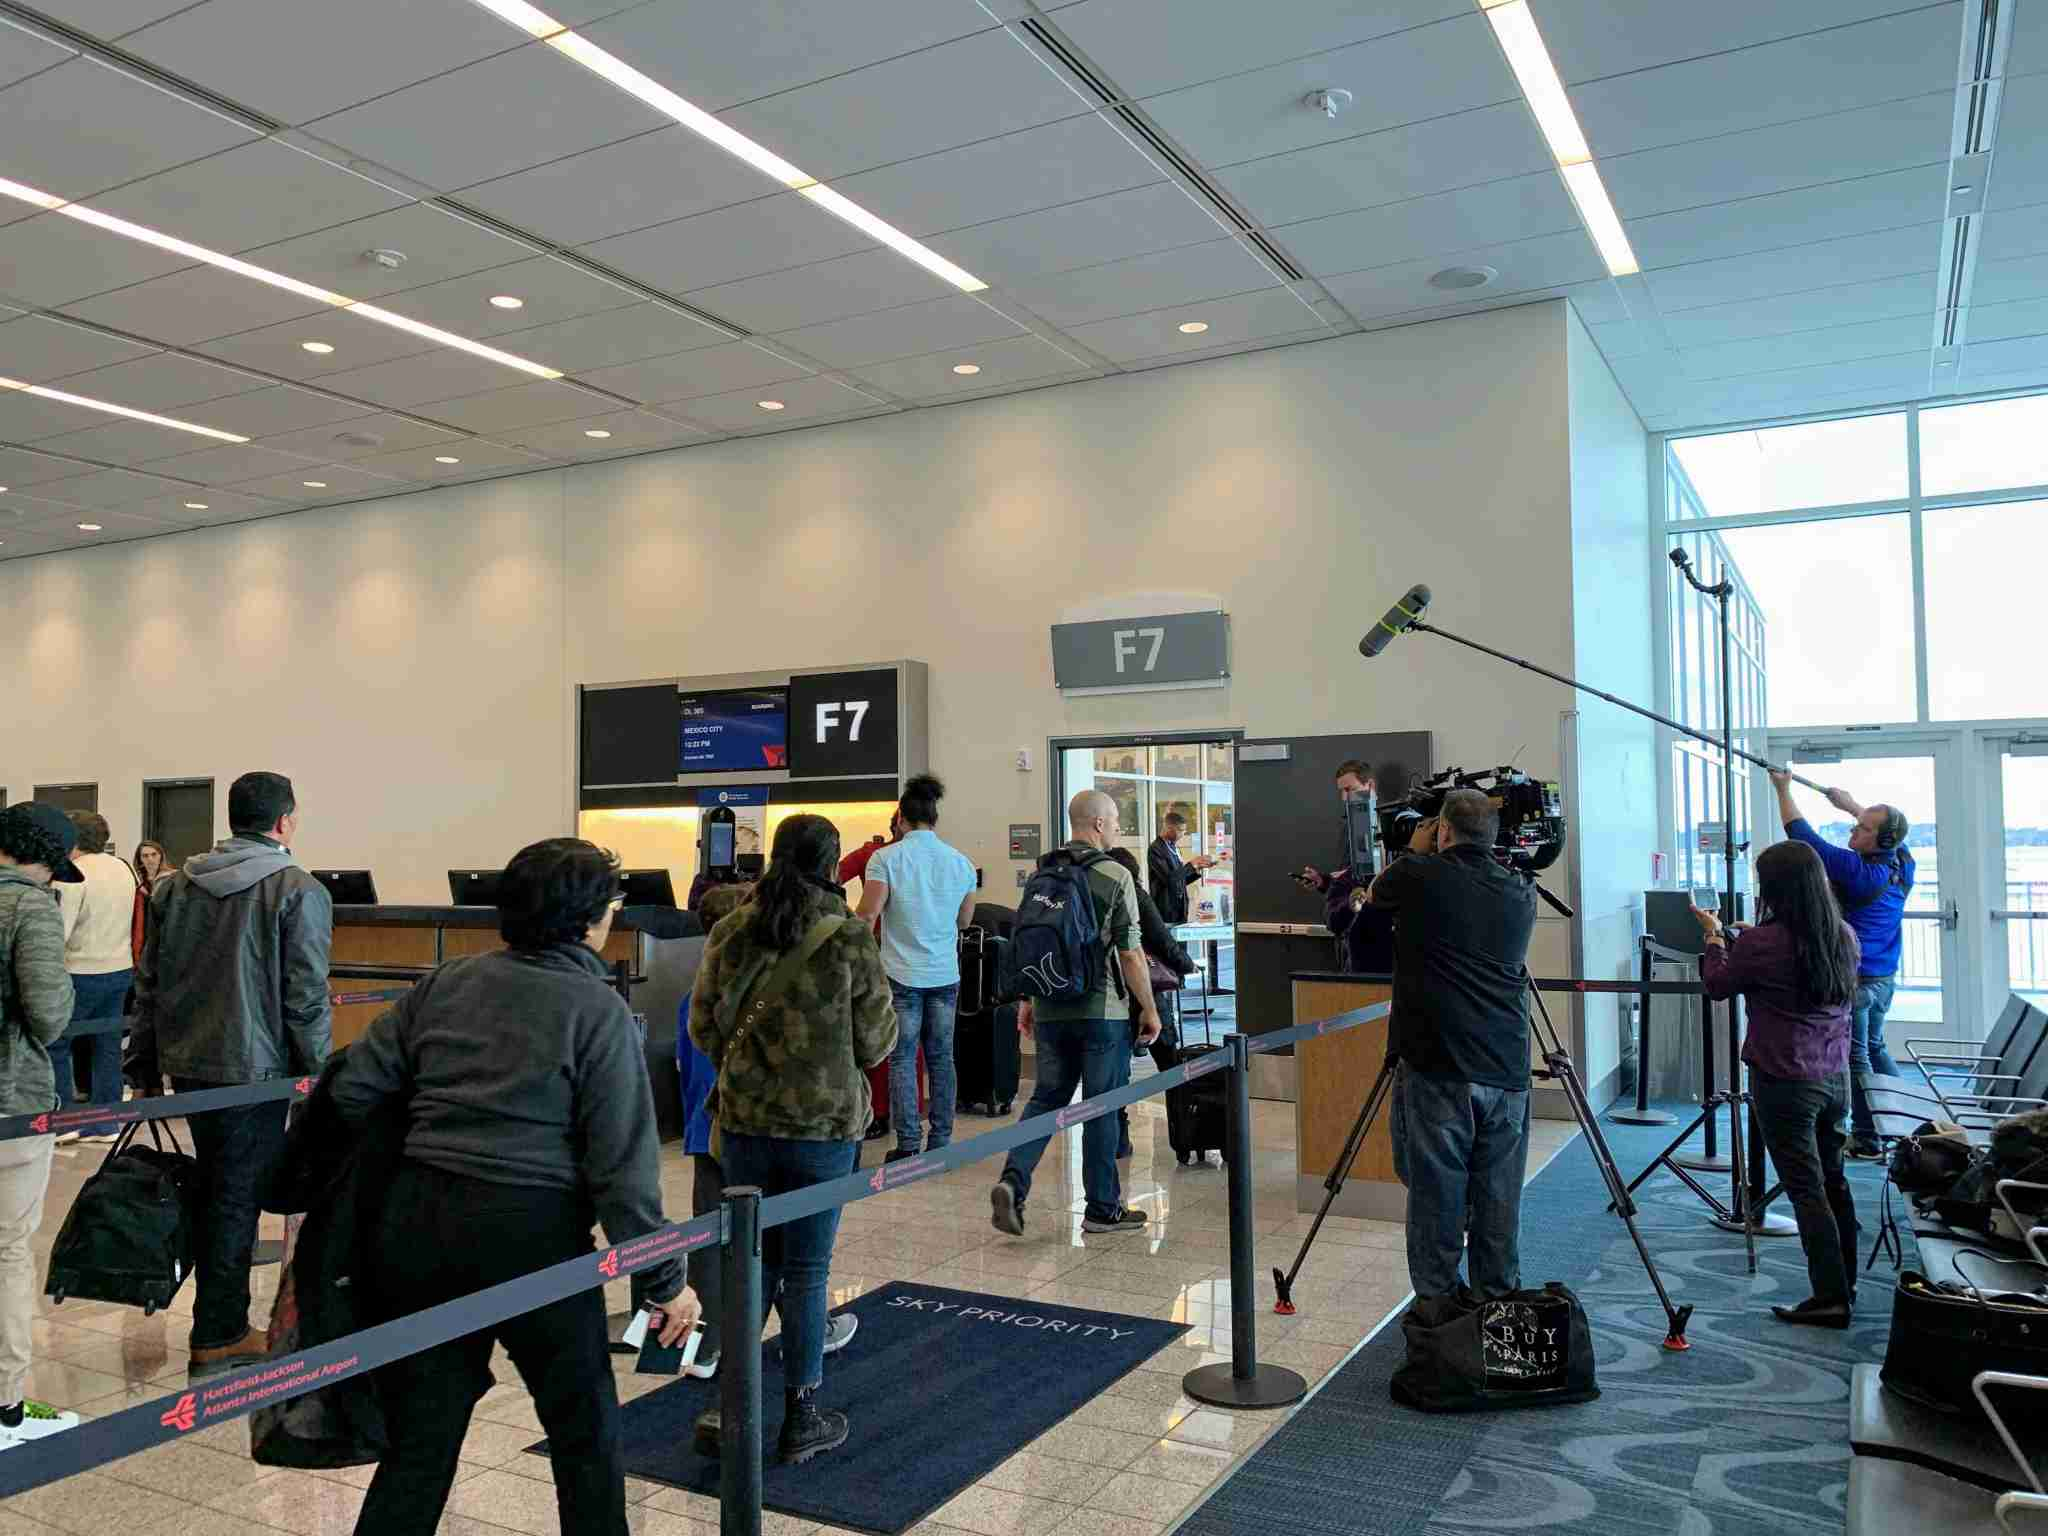 Even with media watching, biometric boarding was relatively snag-free